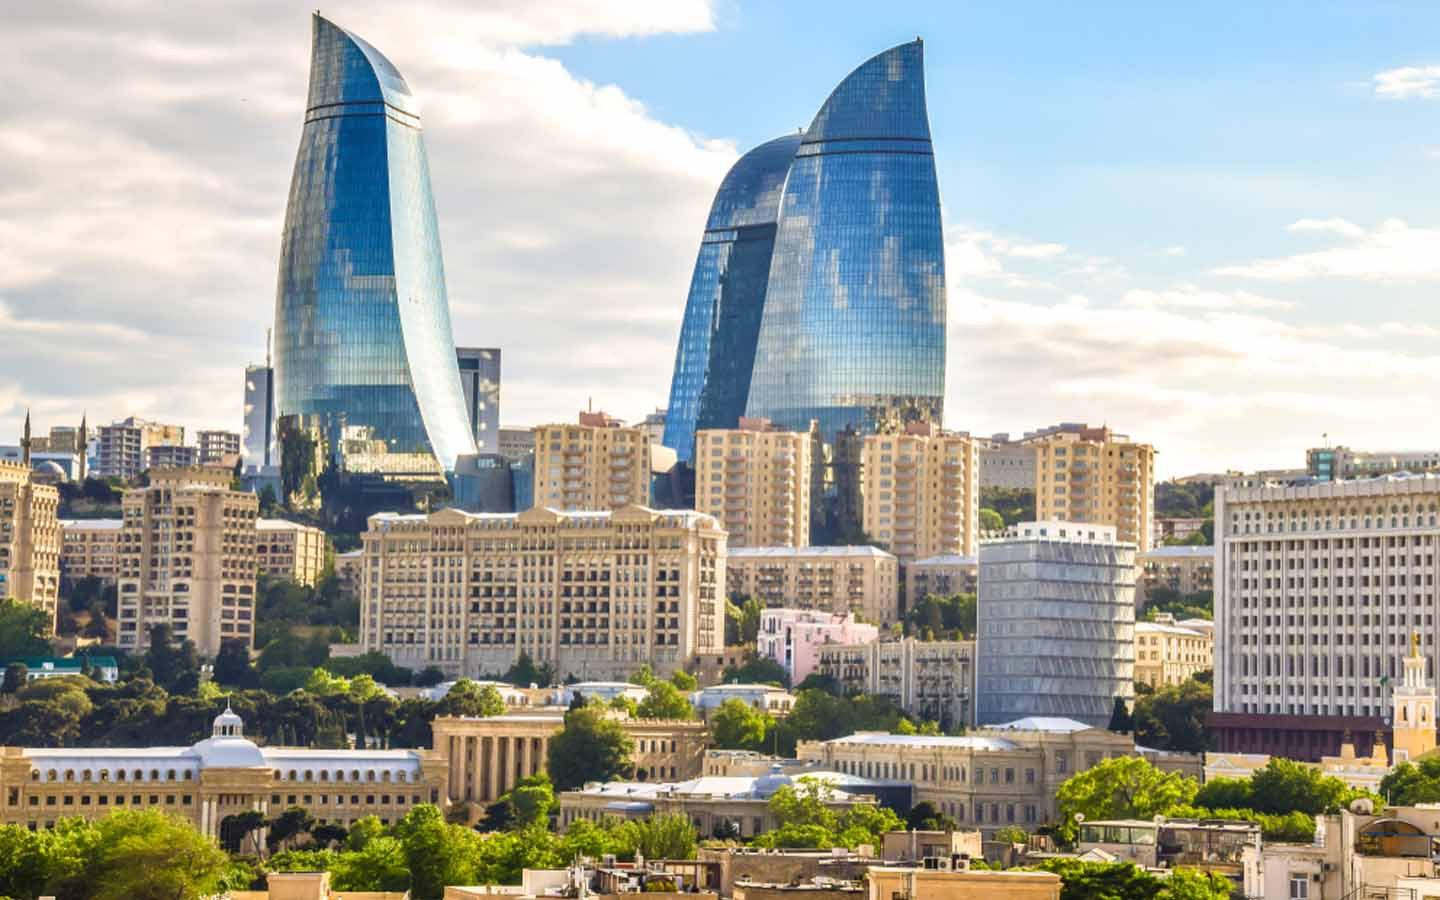 A view of buildings in Azerbaijan, which is one of the visa free countries for UAE residents